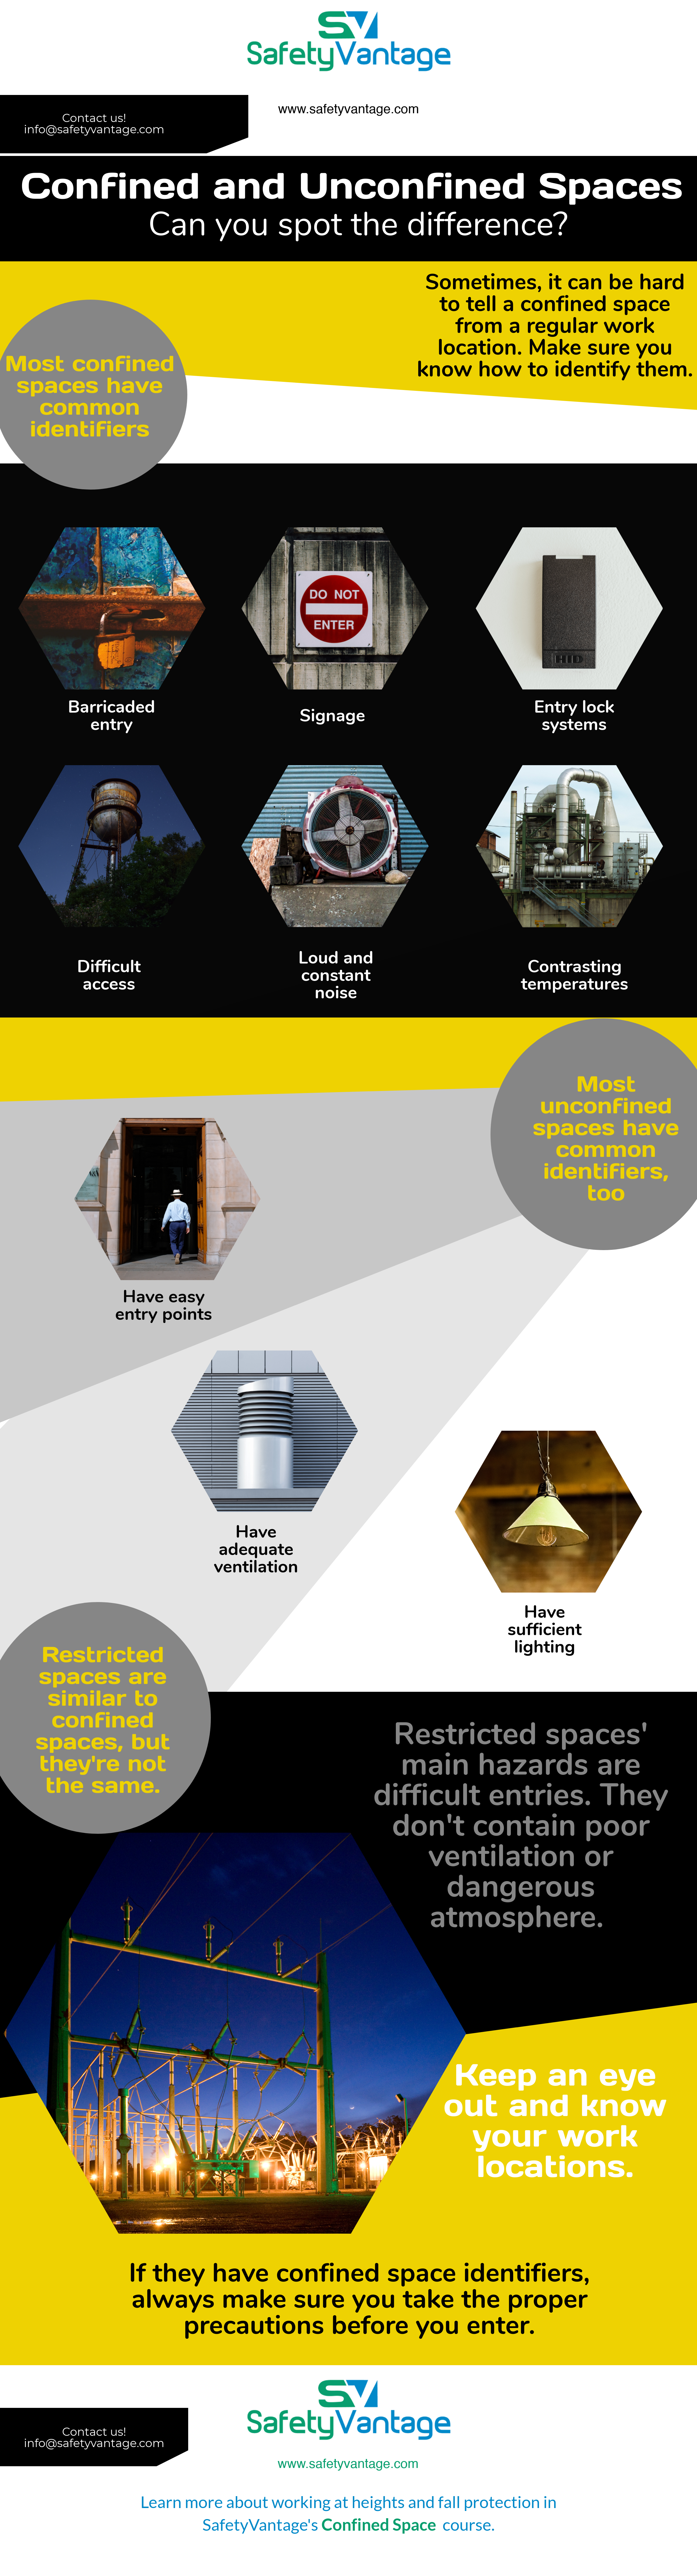 InfoGraphic - Sometimes, it can be hard to tell a confined space from a regular work location. Learn how to tell the difference.